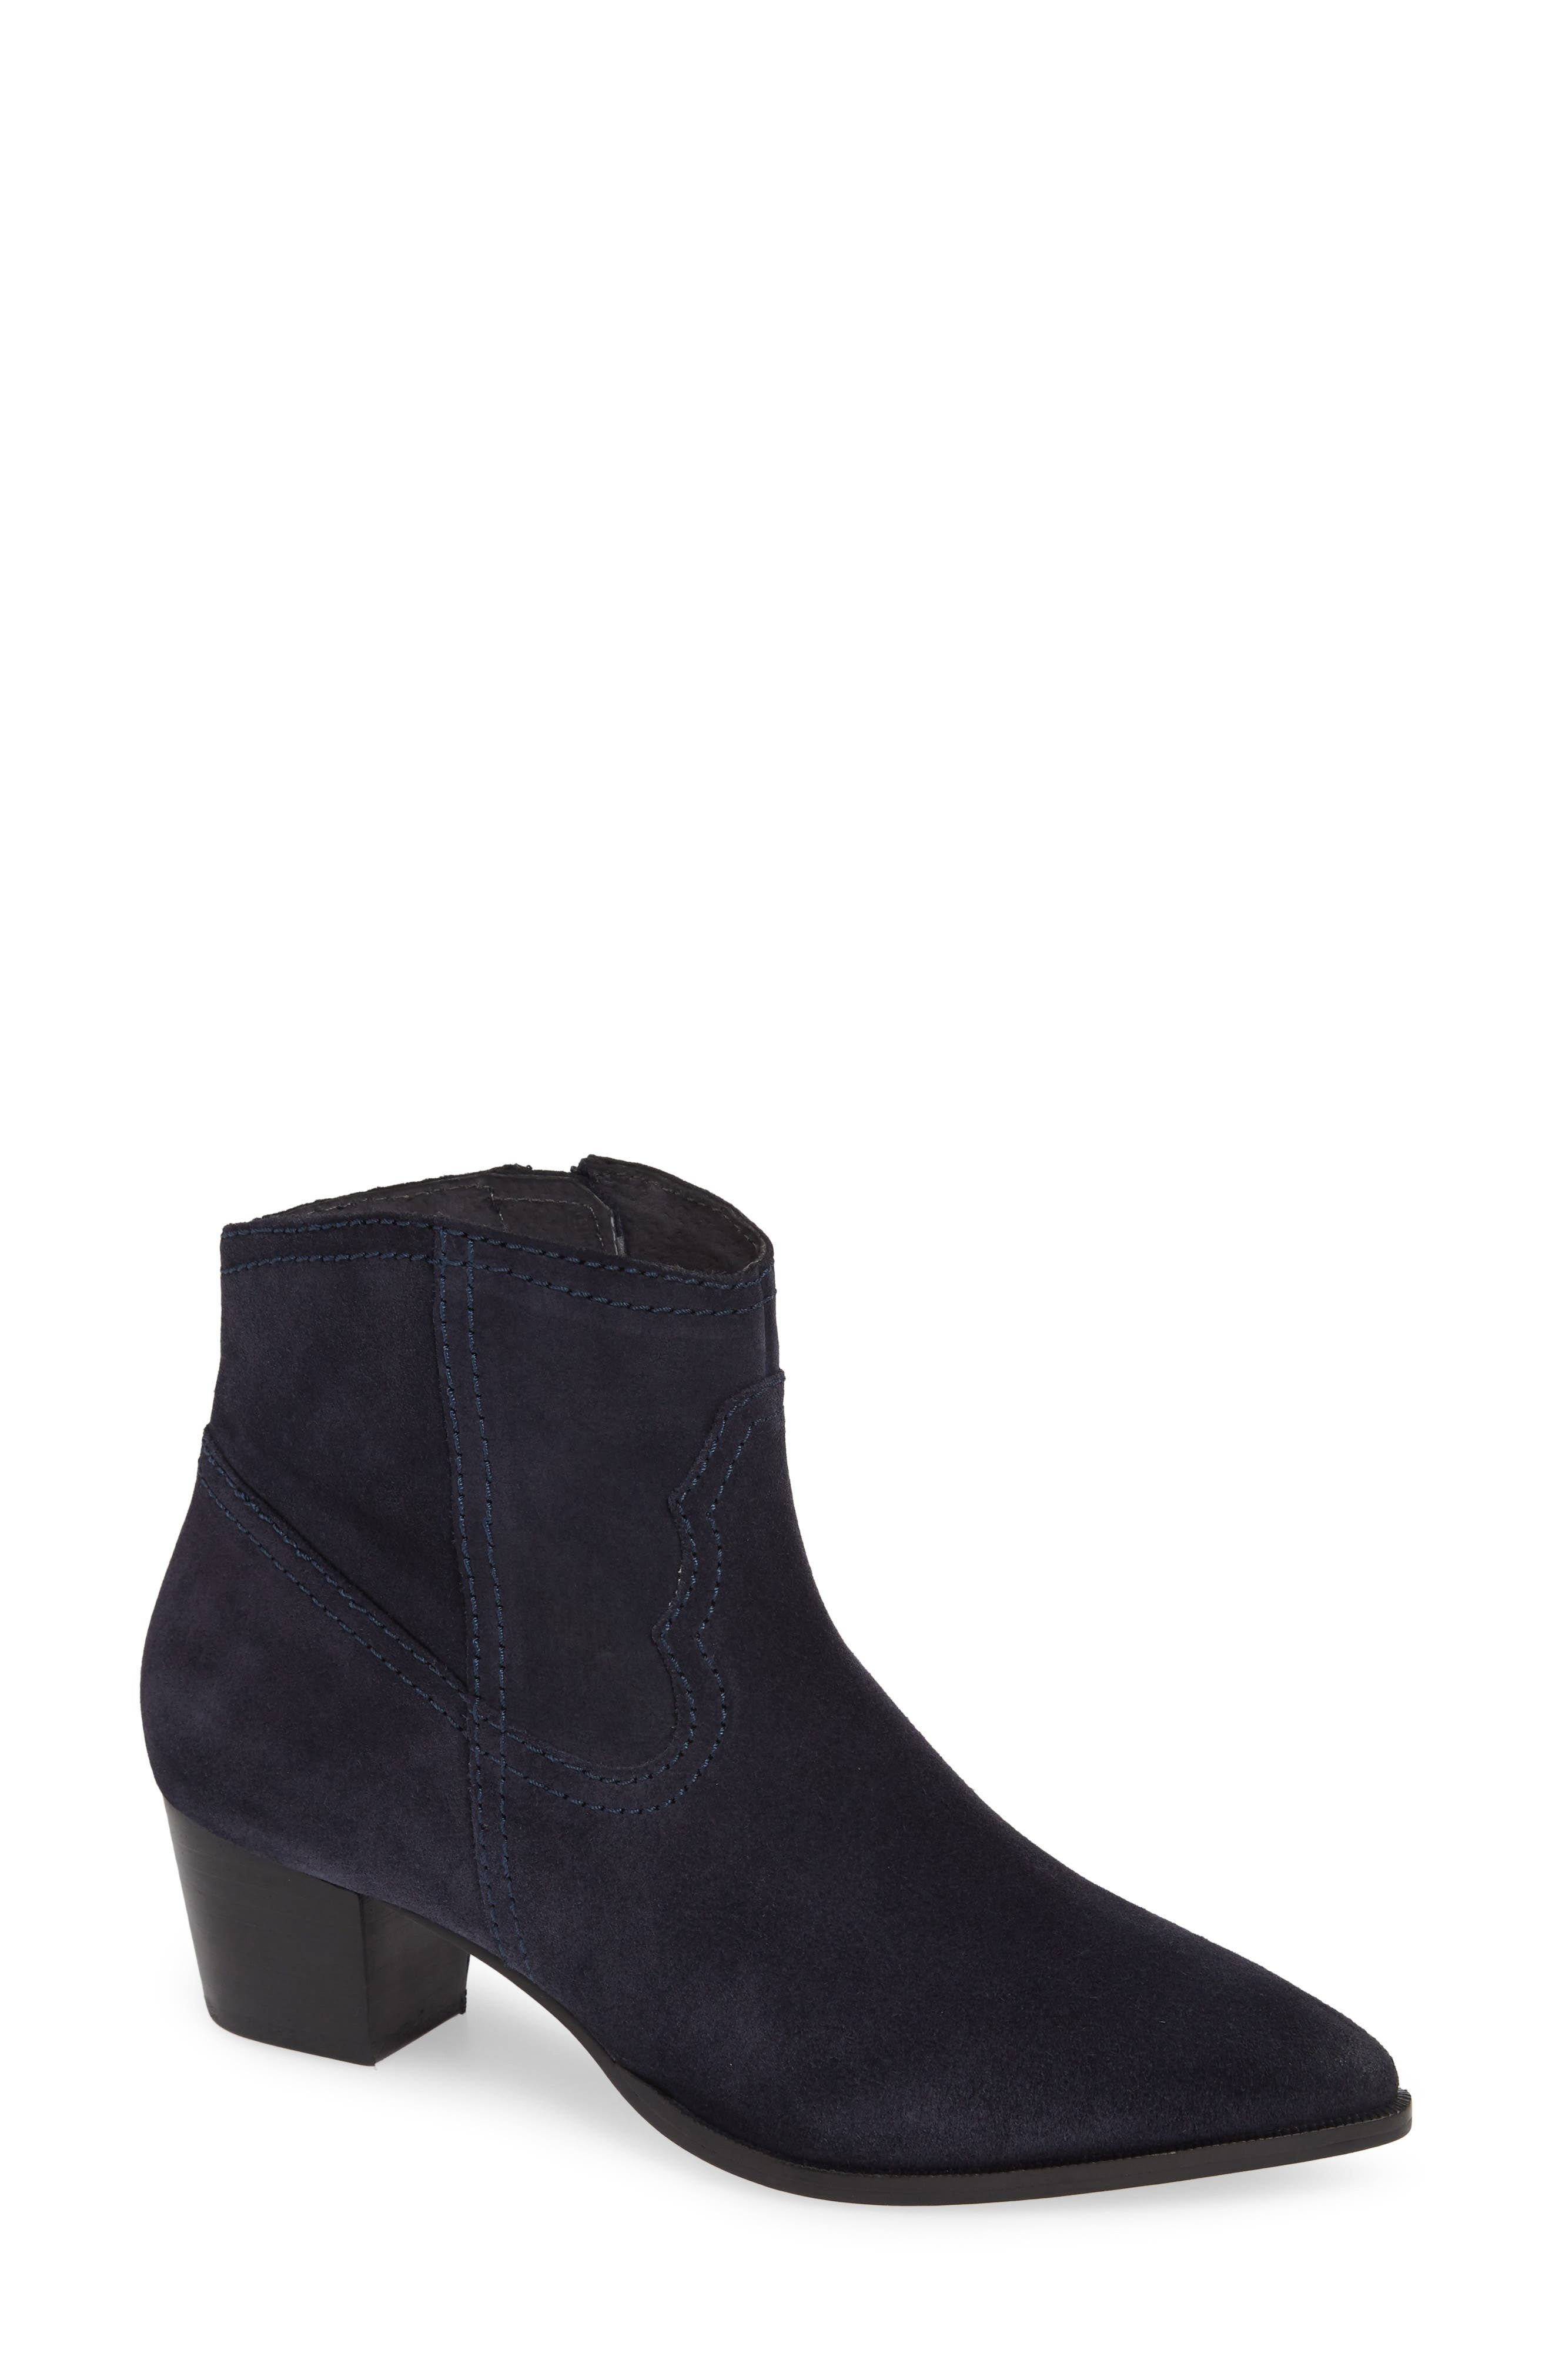 Image of Seychelles Represent Leather Ankle Boot